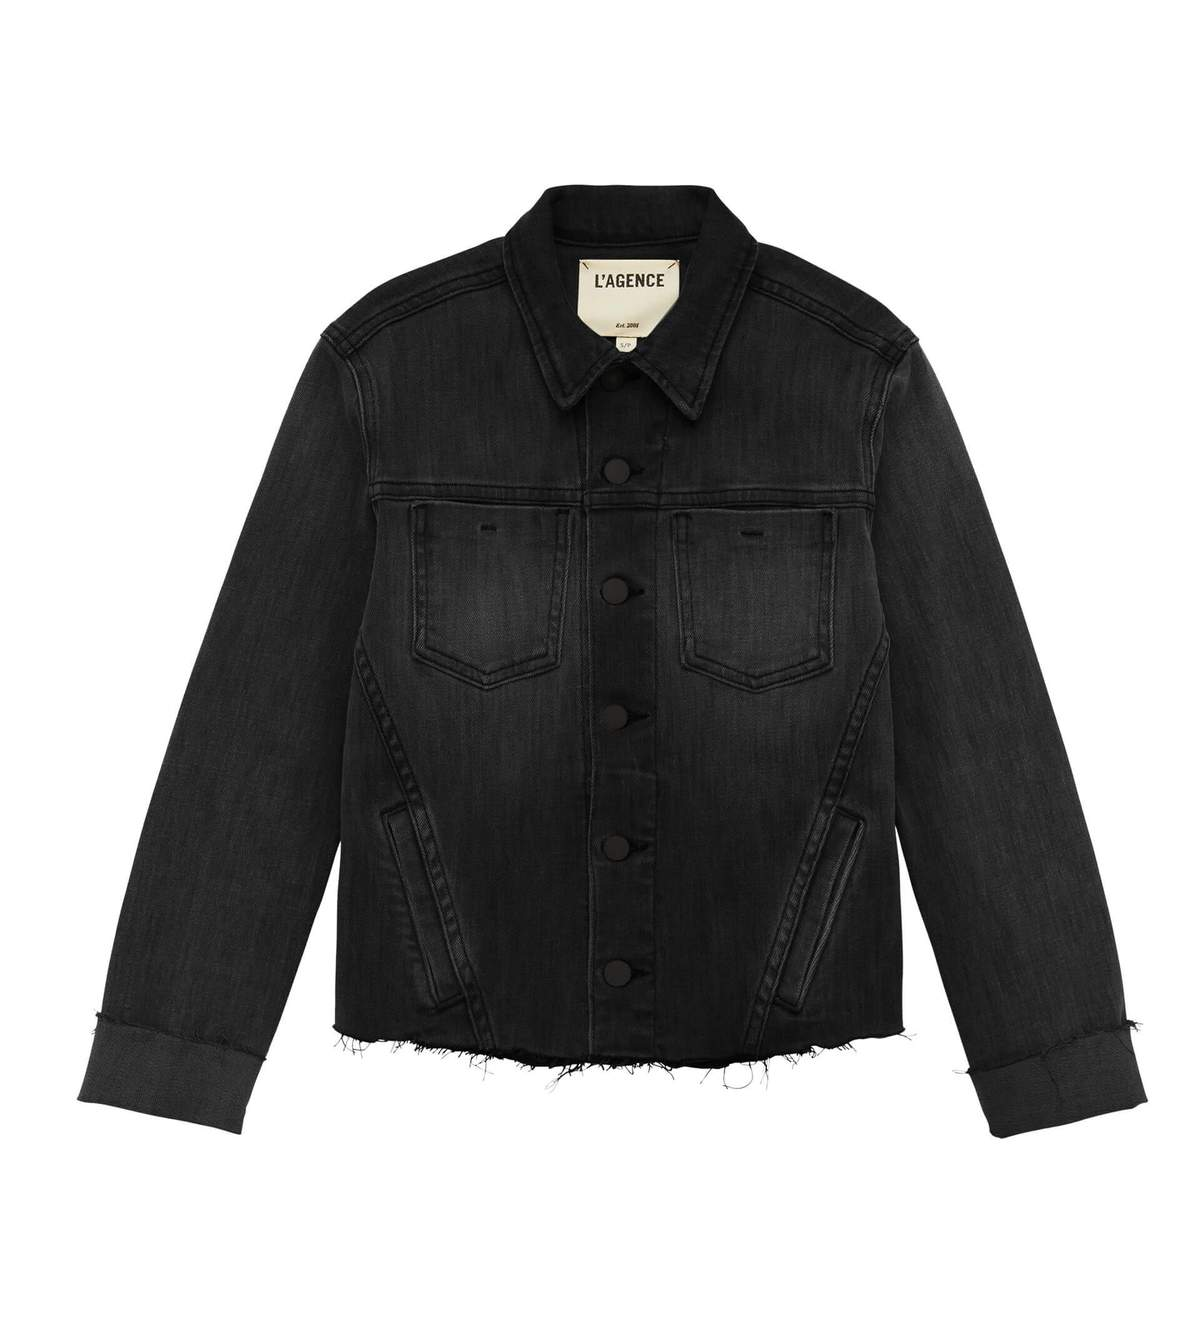 L'Agence Janelle Slim Raw Denim Jacket